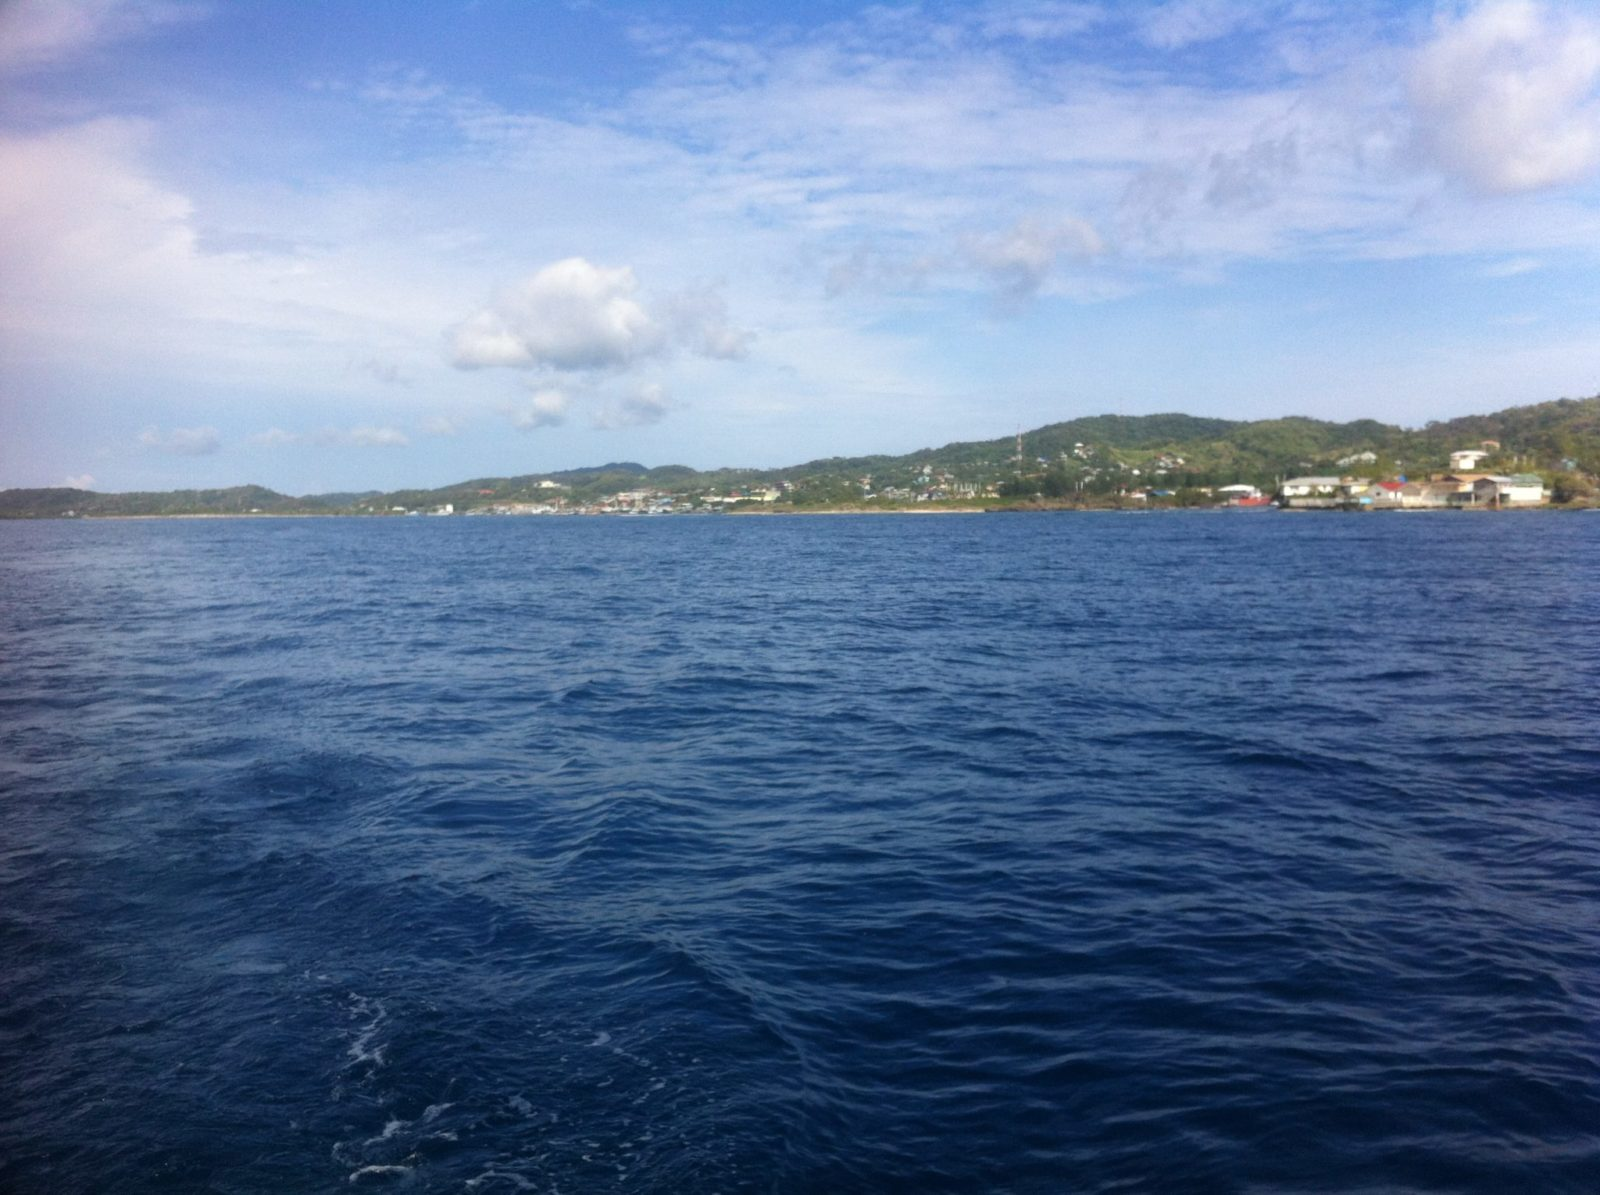 Southwestern side of Roatan